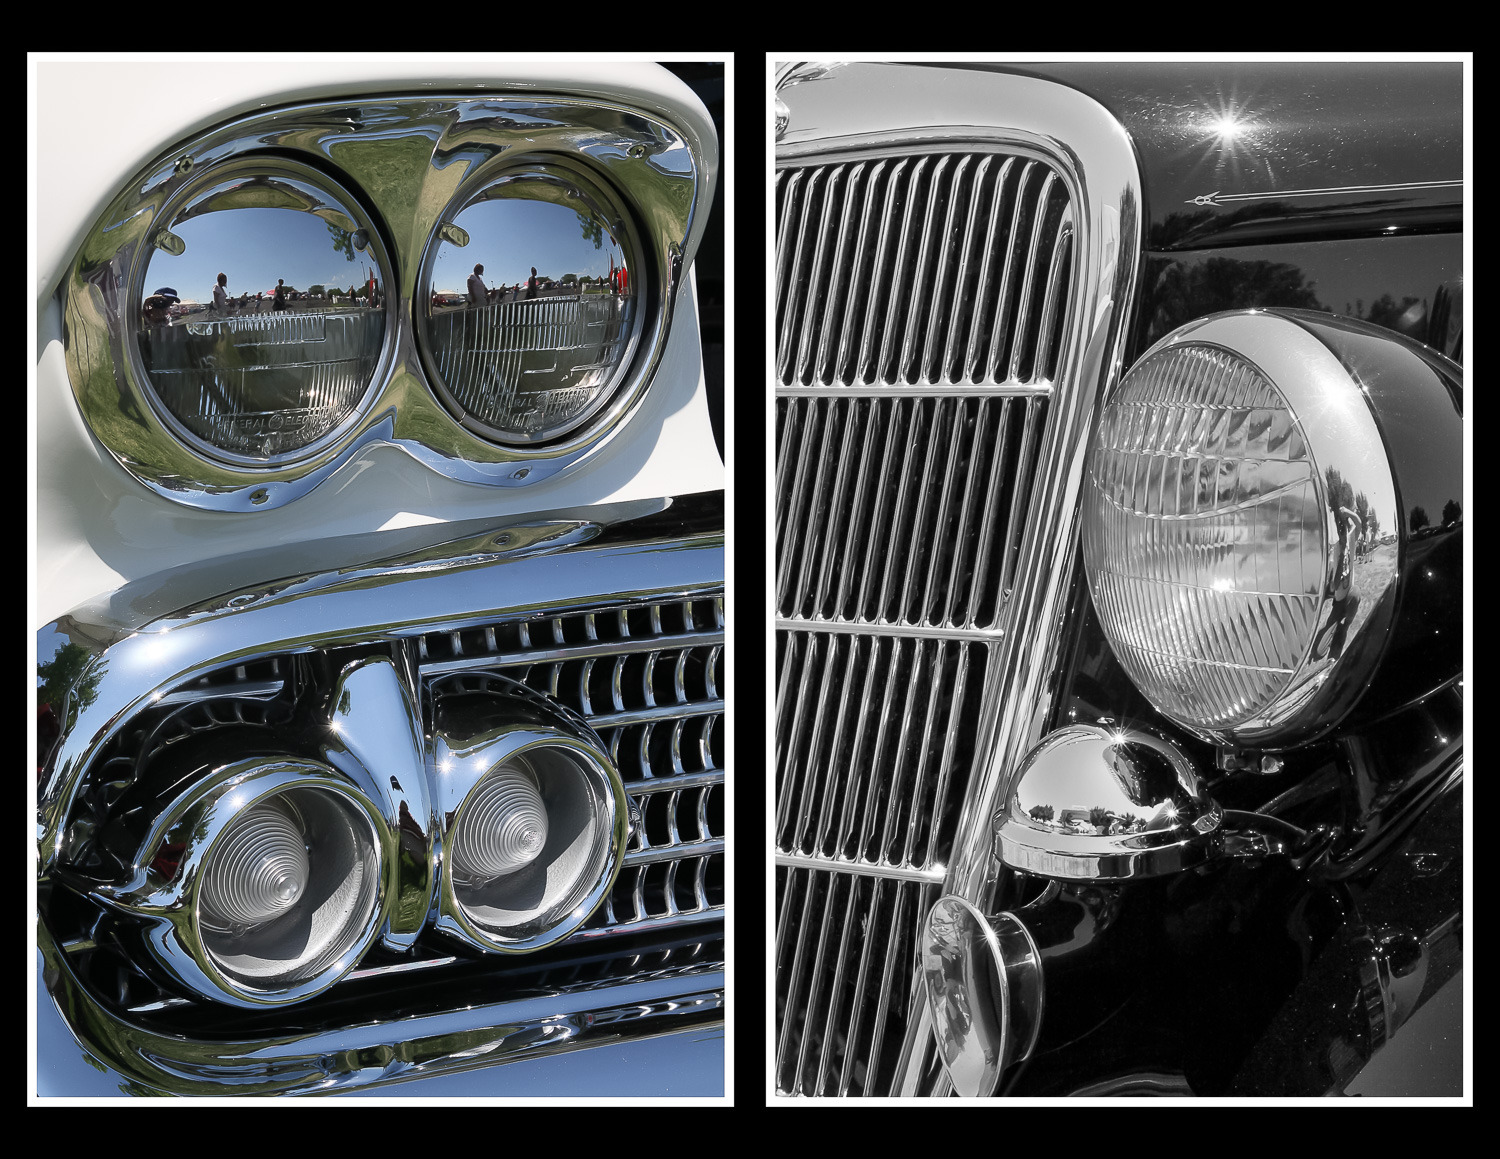 reflections in old cars